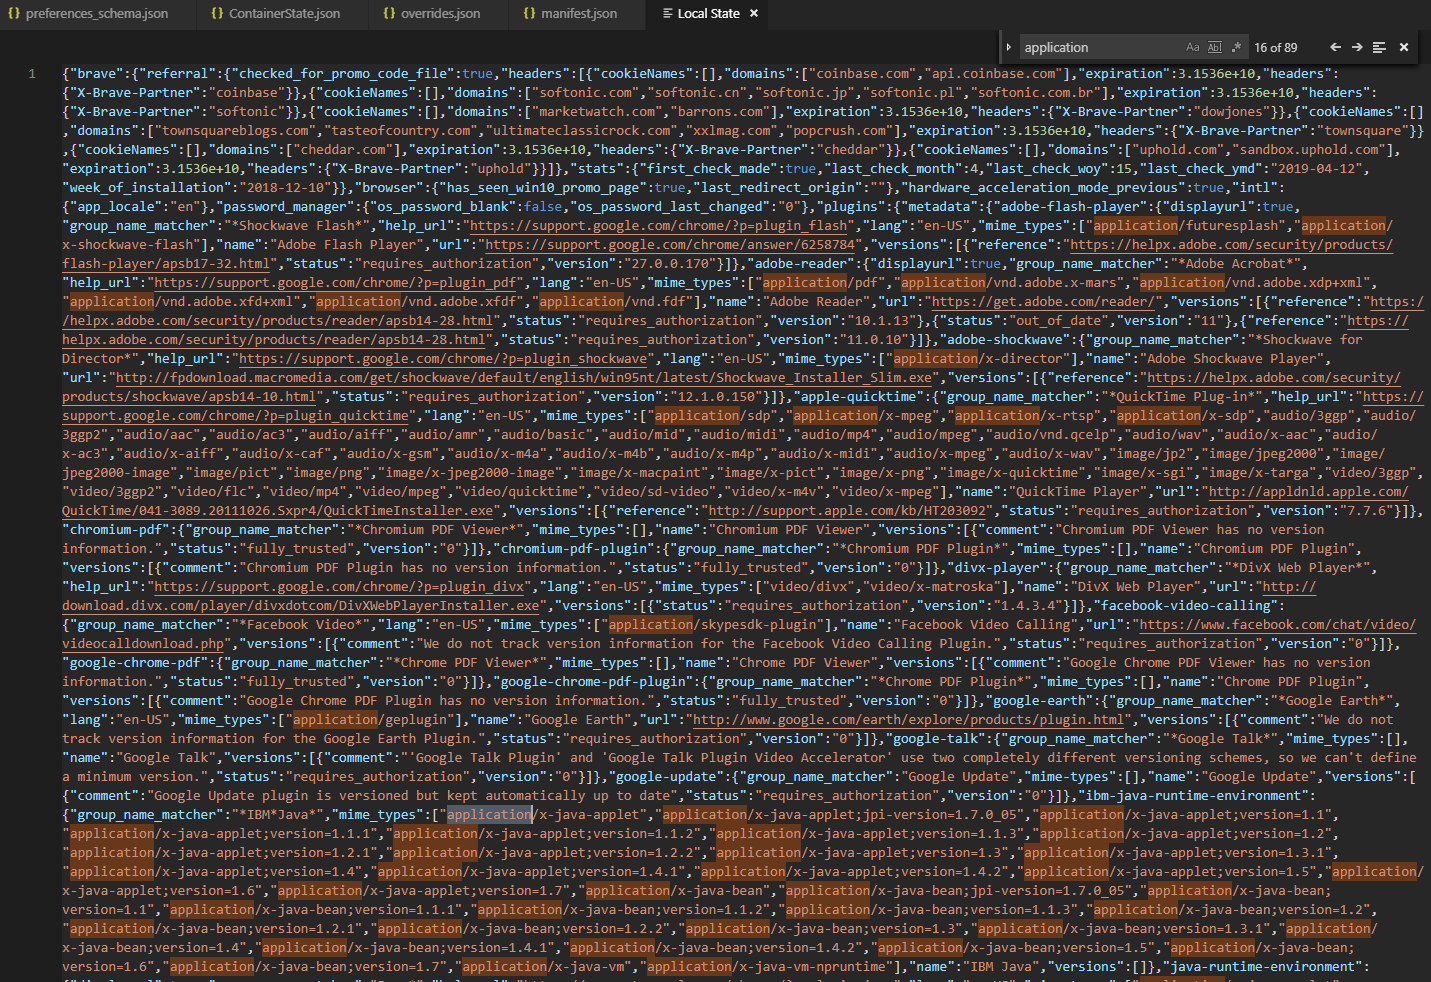 2019-04-18 14_02_37-Local State - Untitled (Workspace) - Visual Studio Code.png